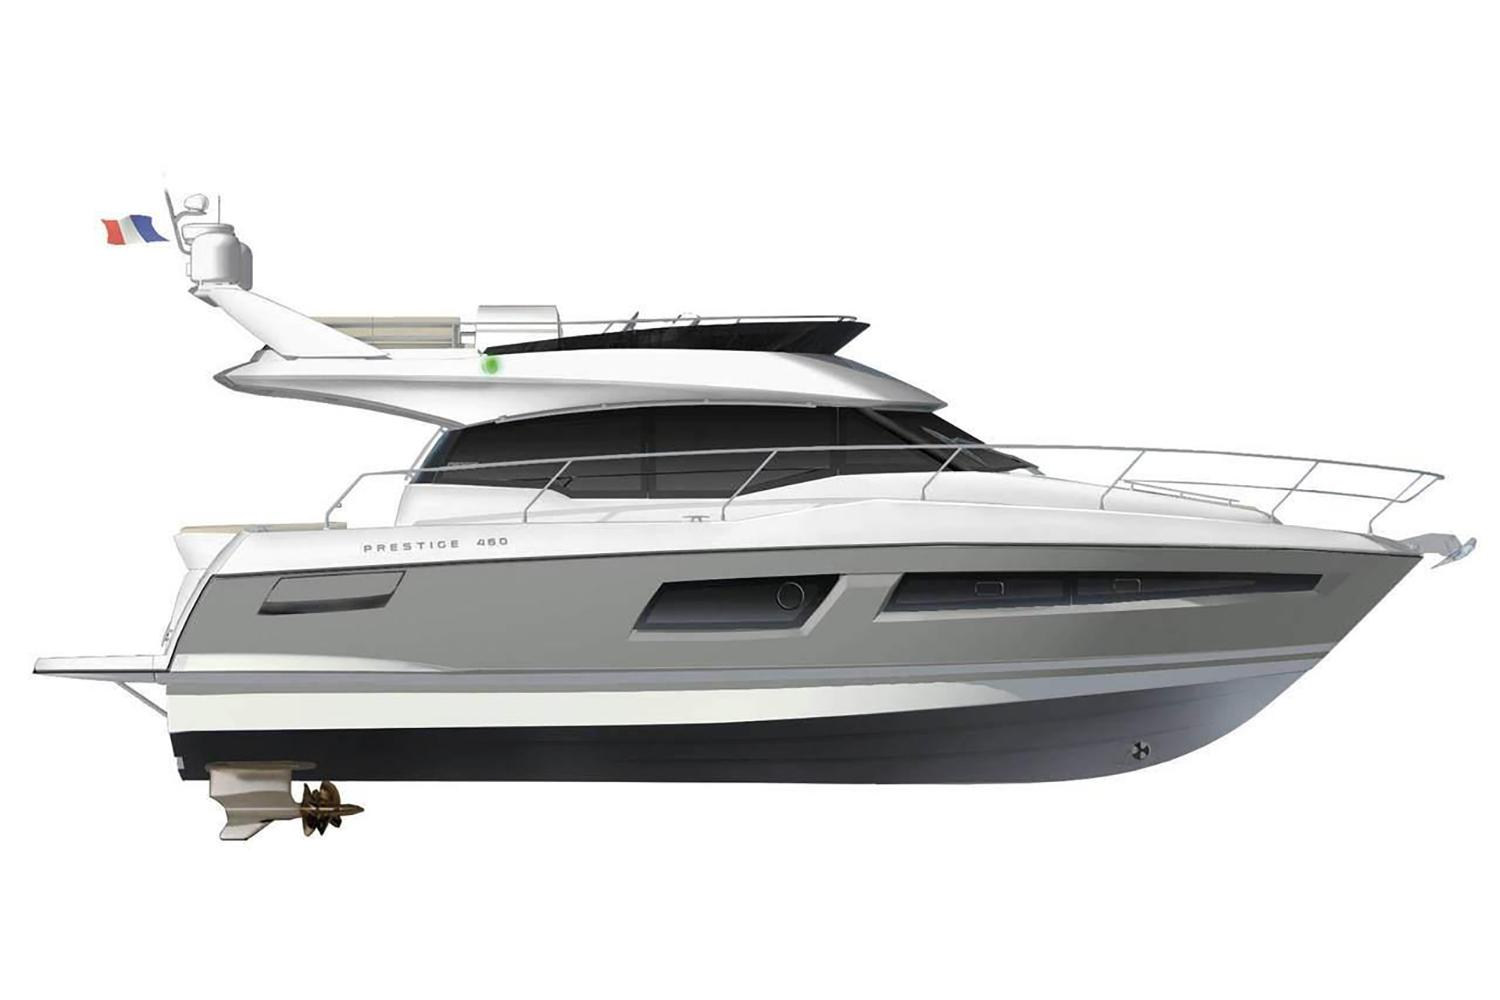 2021 Prestige 460 Fly #75565 inventory image at Sun Country Coastal in San Diego